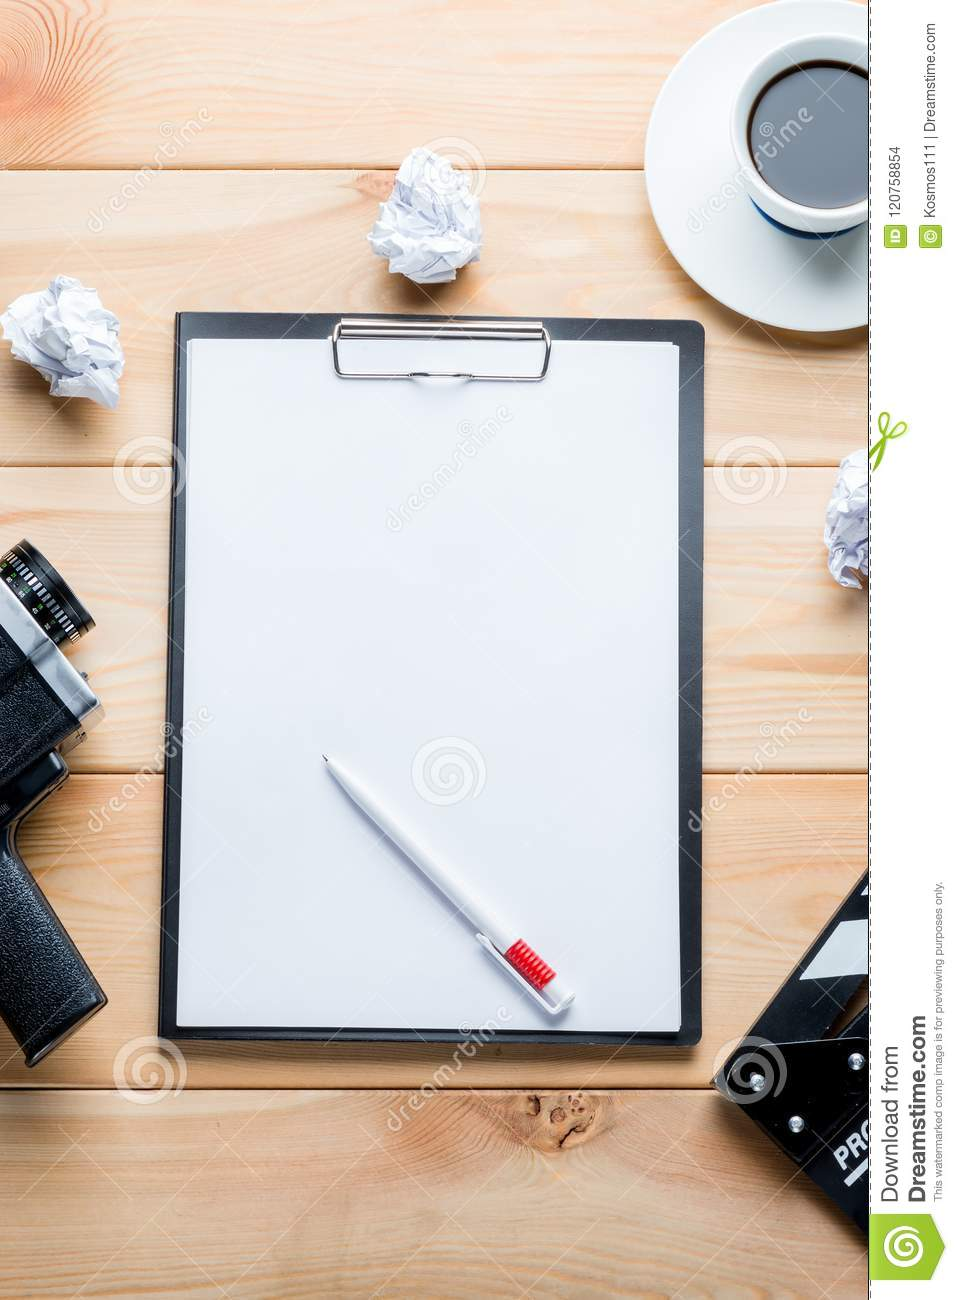 Paper and objects for the film industry on a wooden background t